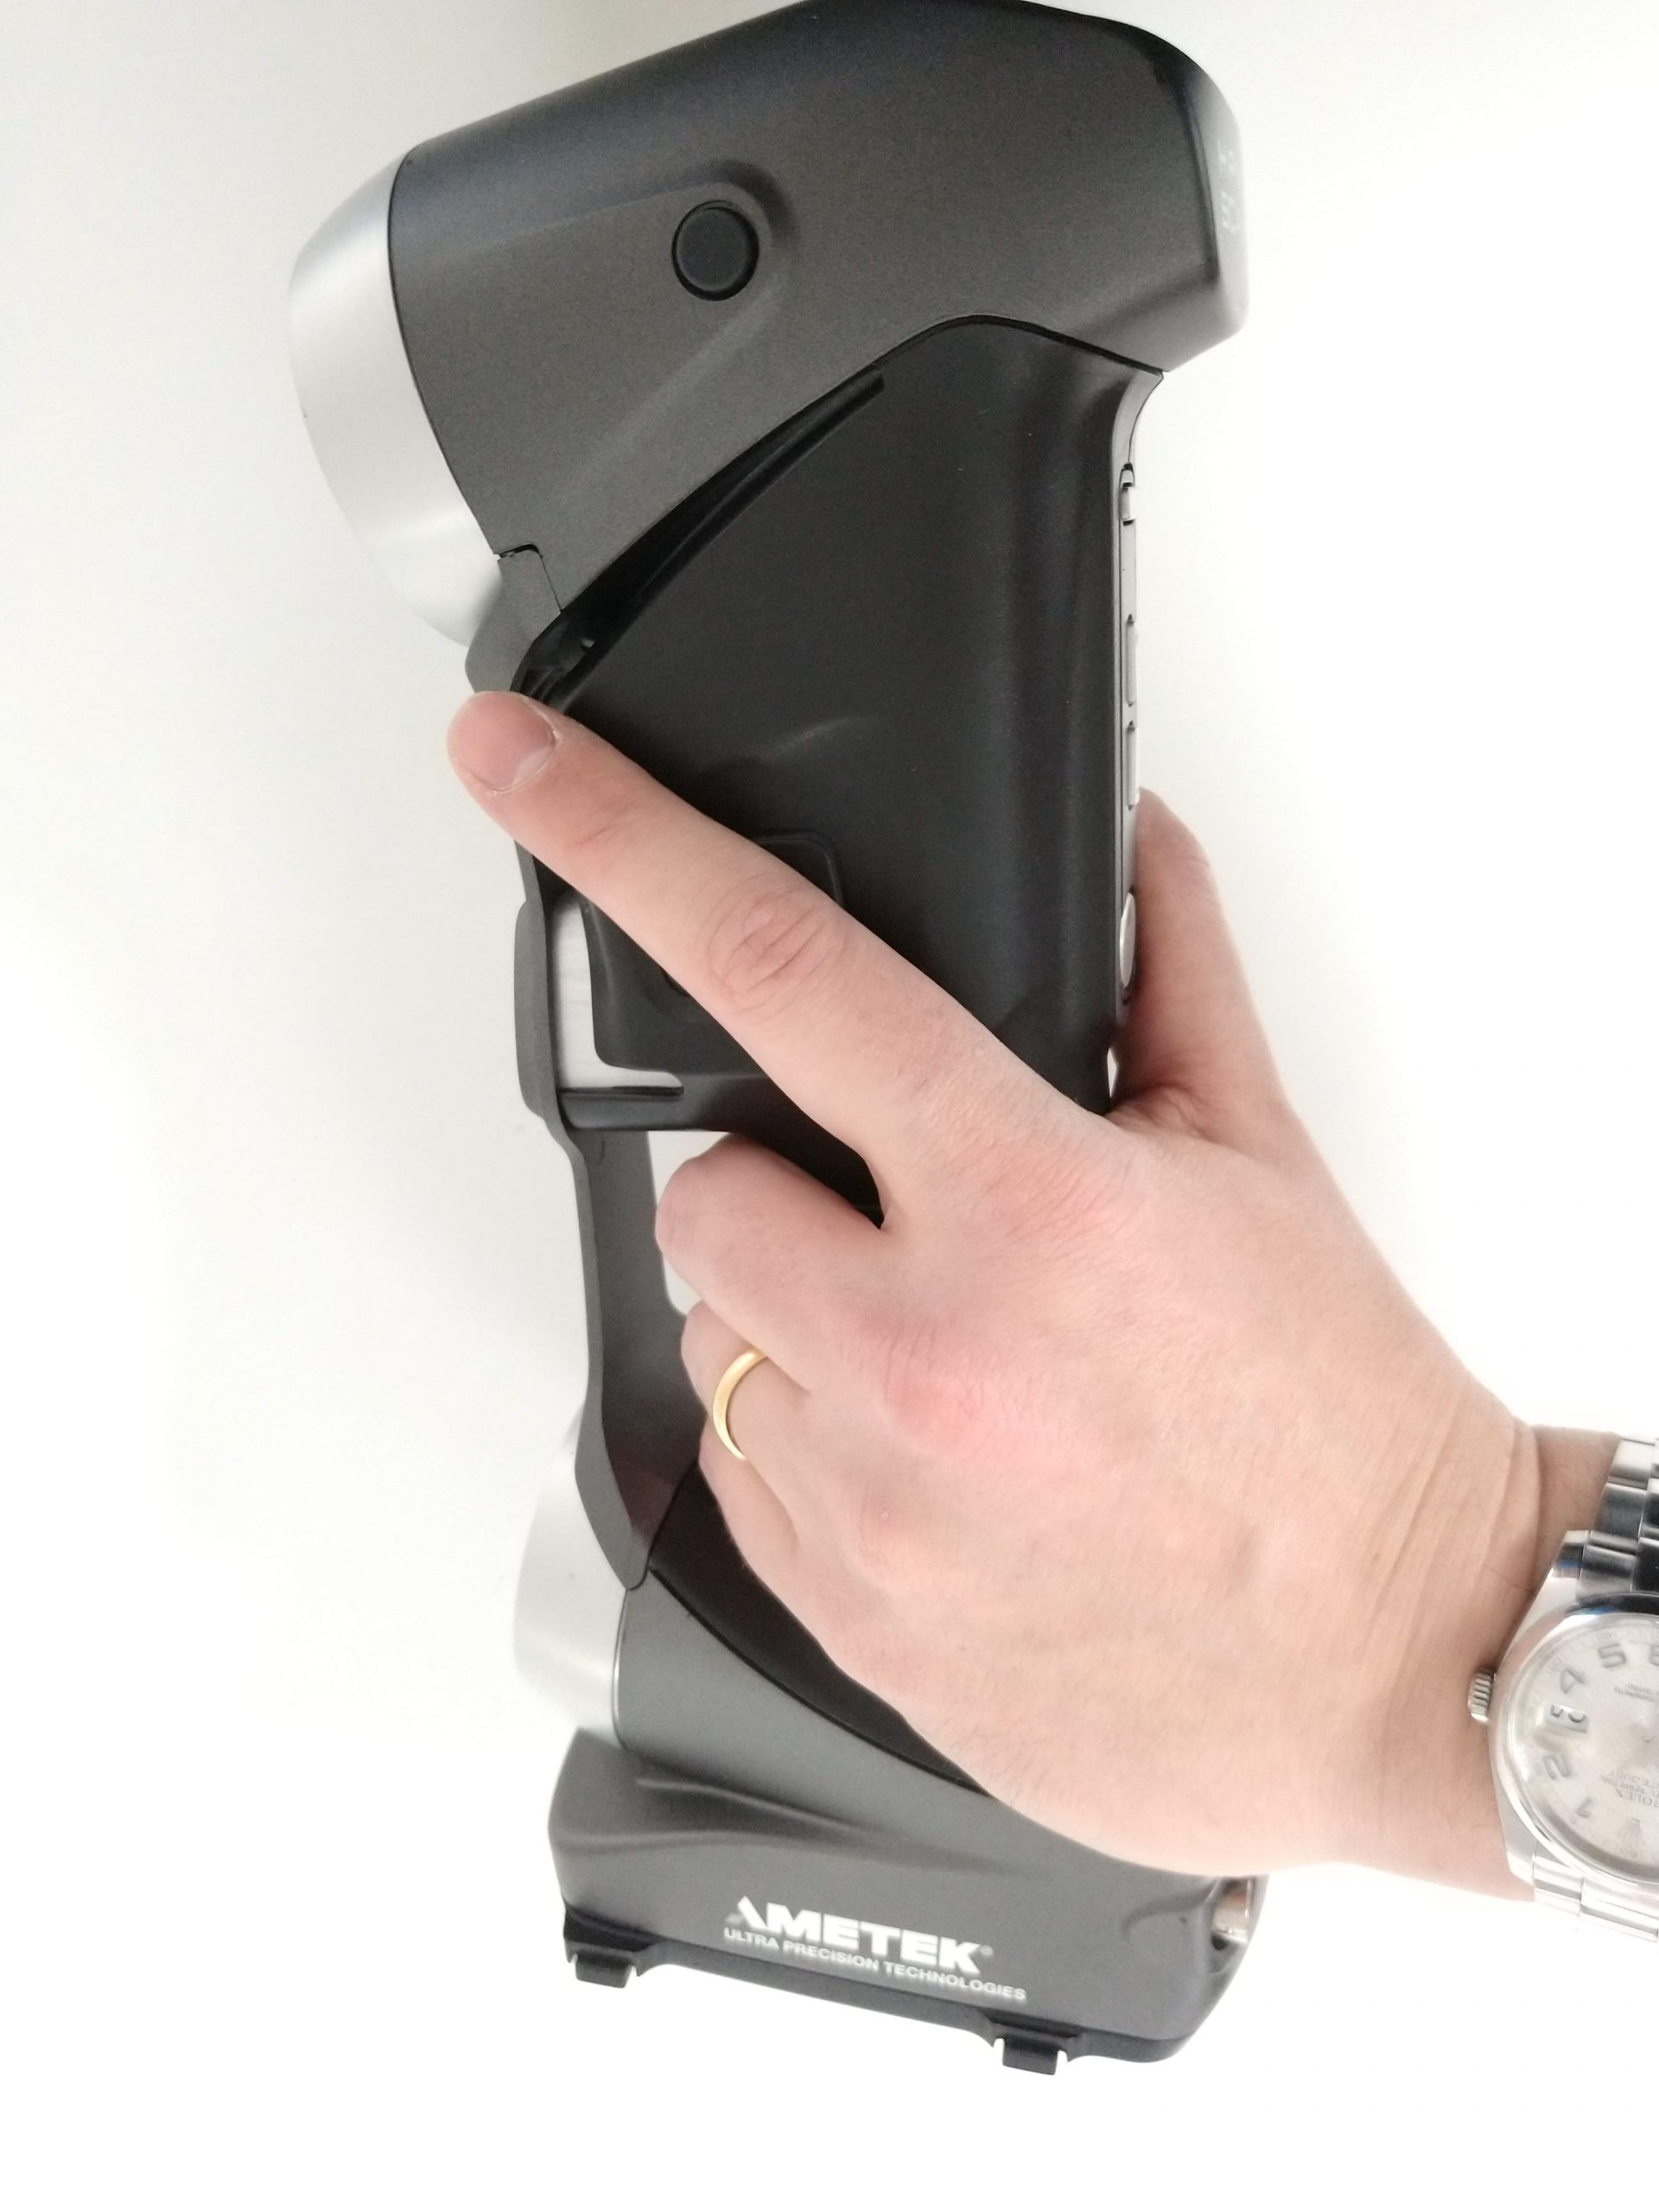 Hand position when holding the HS700